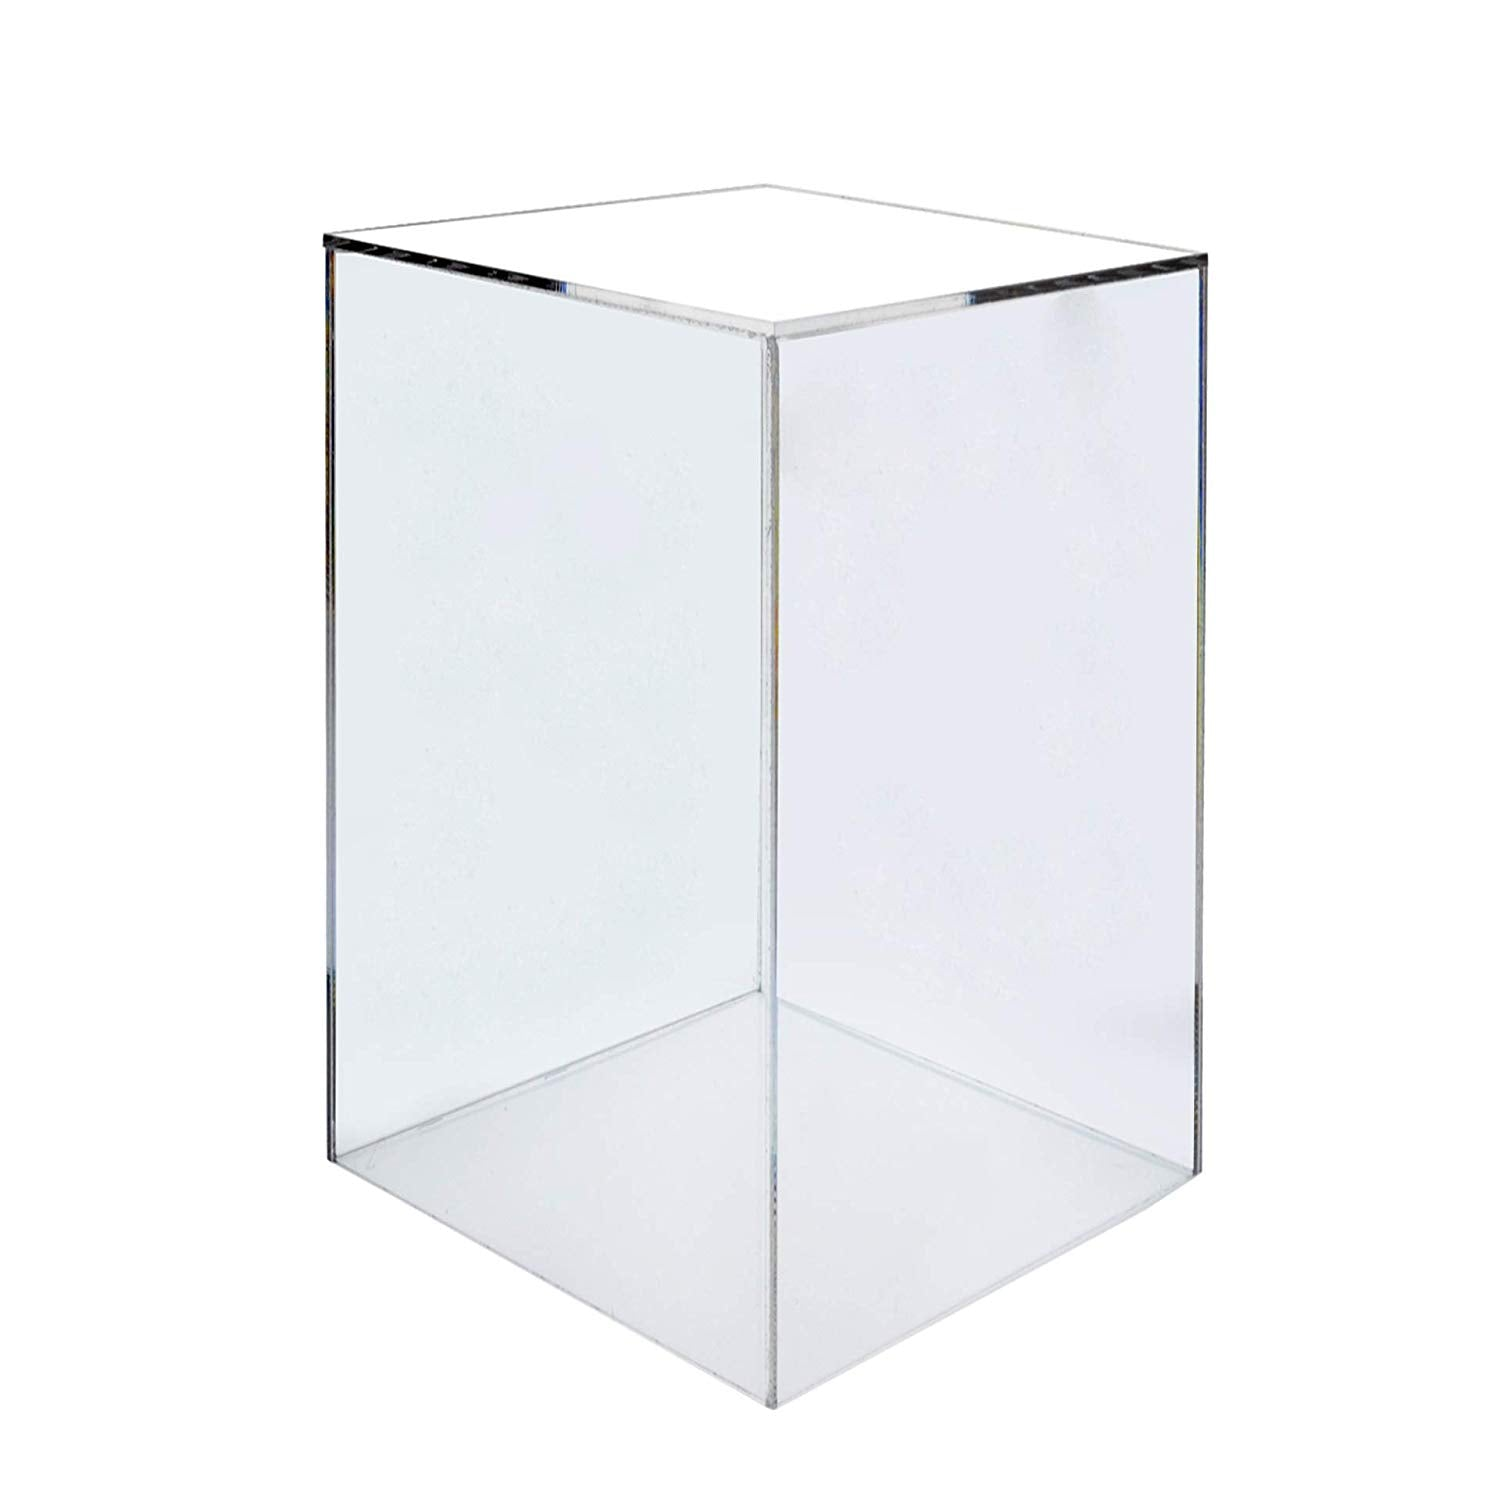 "Marketing Holders Display Cube Pedestal Sculpture Stand 12""w x 12""d x 19""h Trophy Art Figurine Showcase Clear Acrylic"